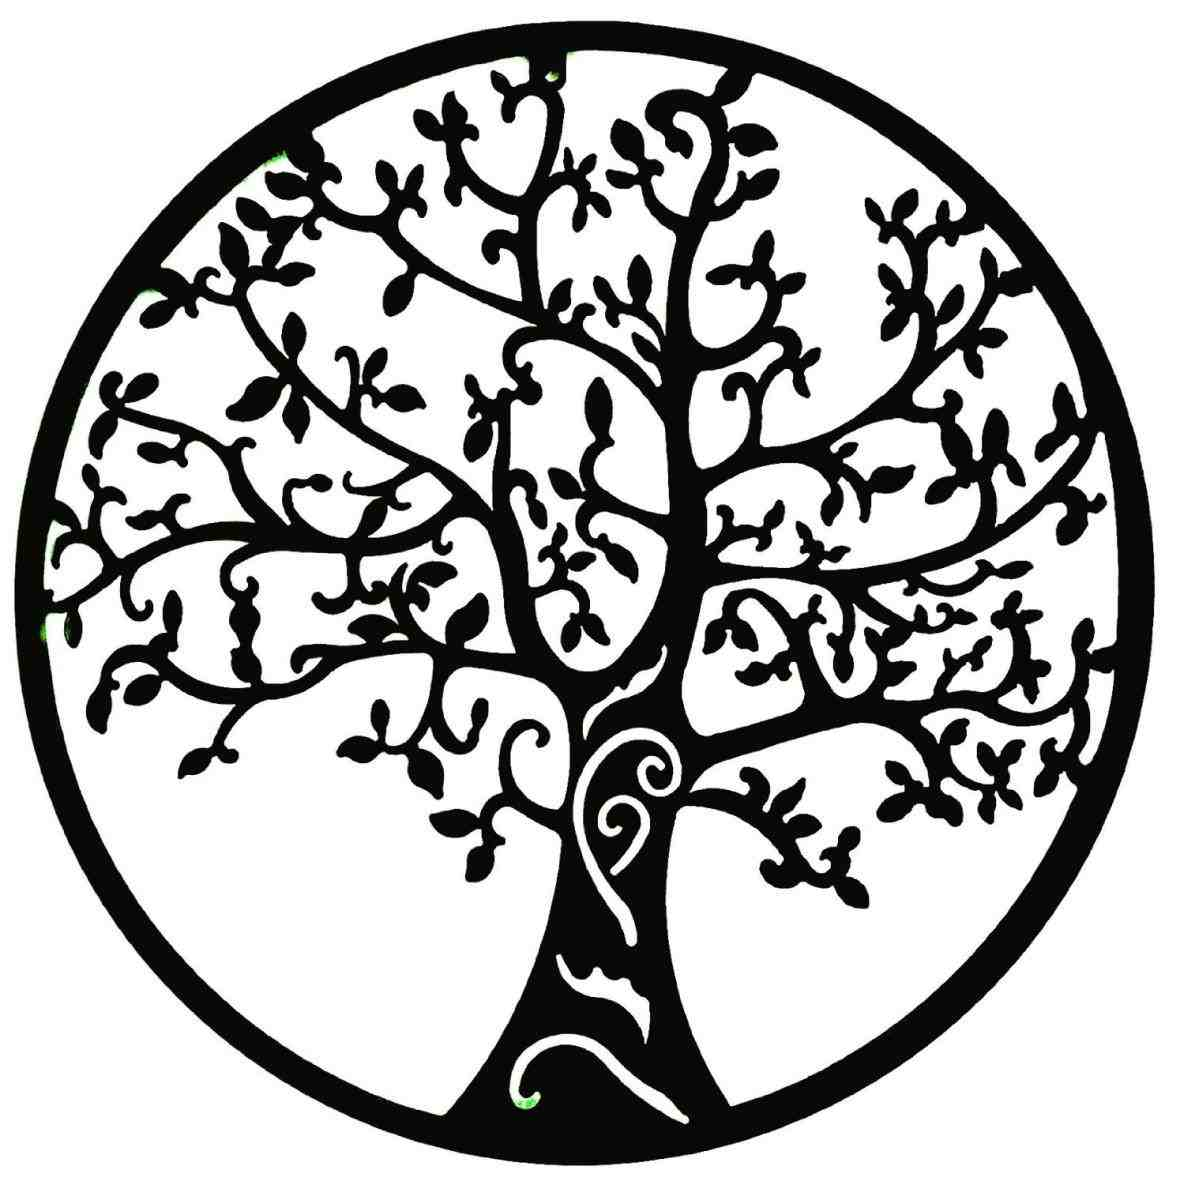 Free Tree Of Life Silhouette Clip Art, Download Free Clip.